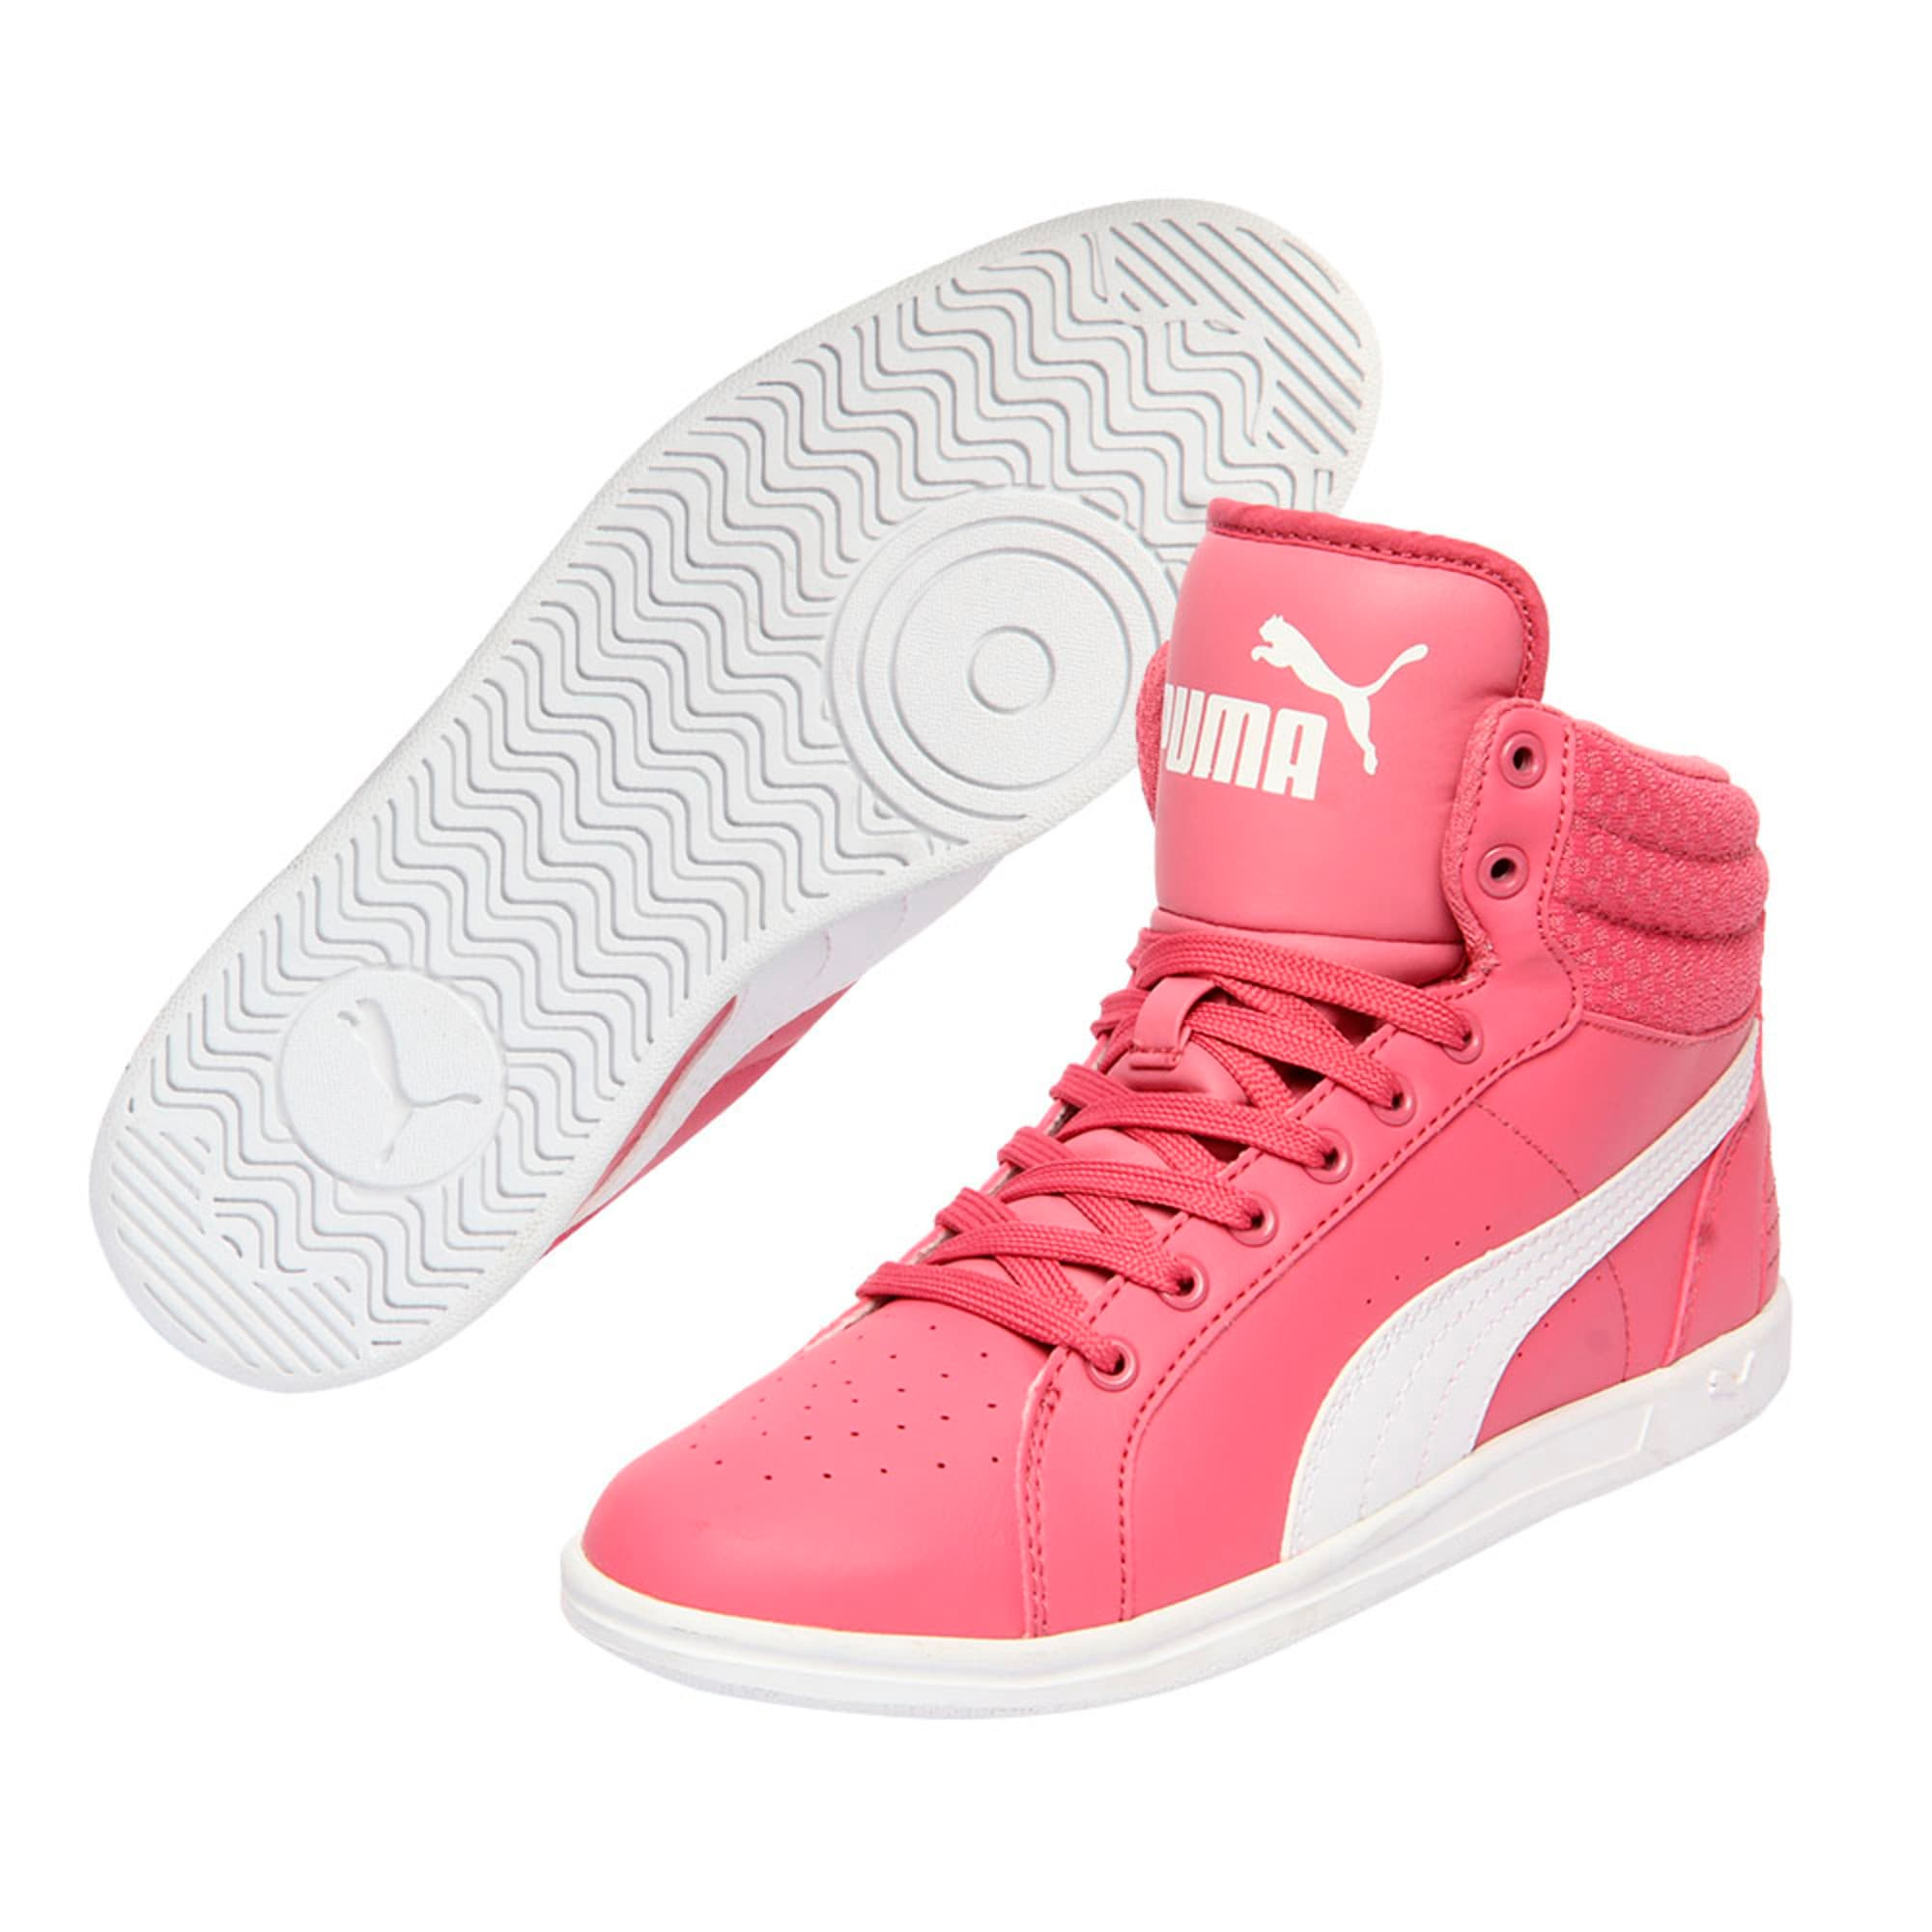 Thumbnail 6 of Puma Ikaz Mid v2 Jr, Rapture Rose-Puma White, medium-IND